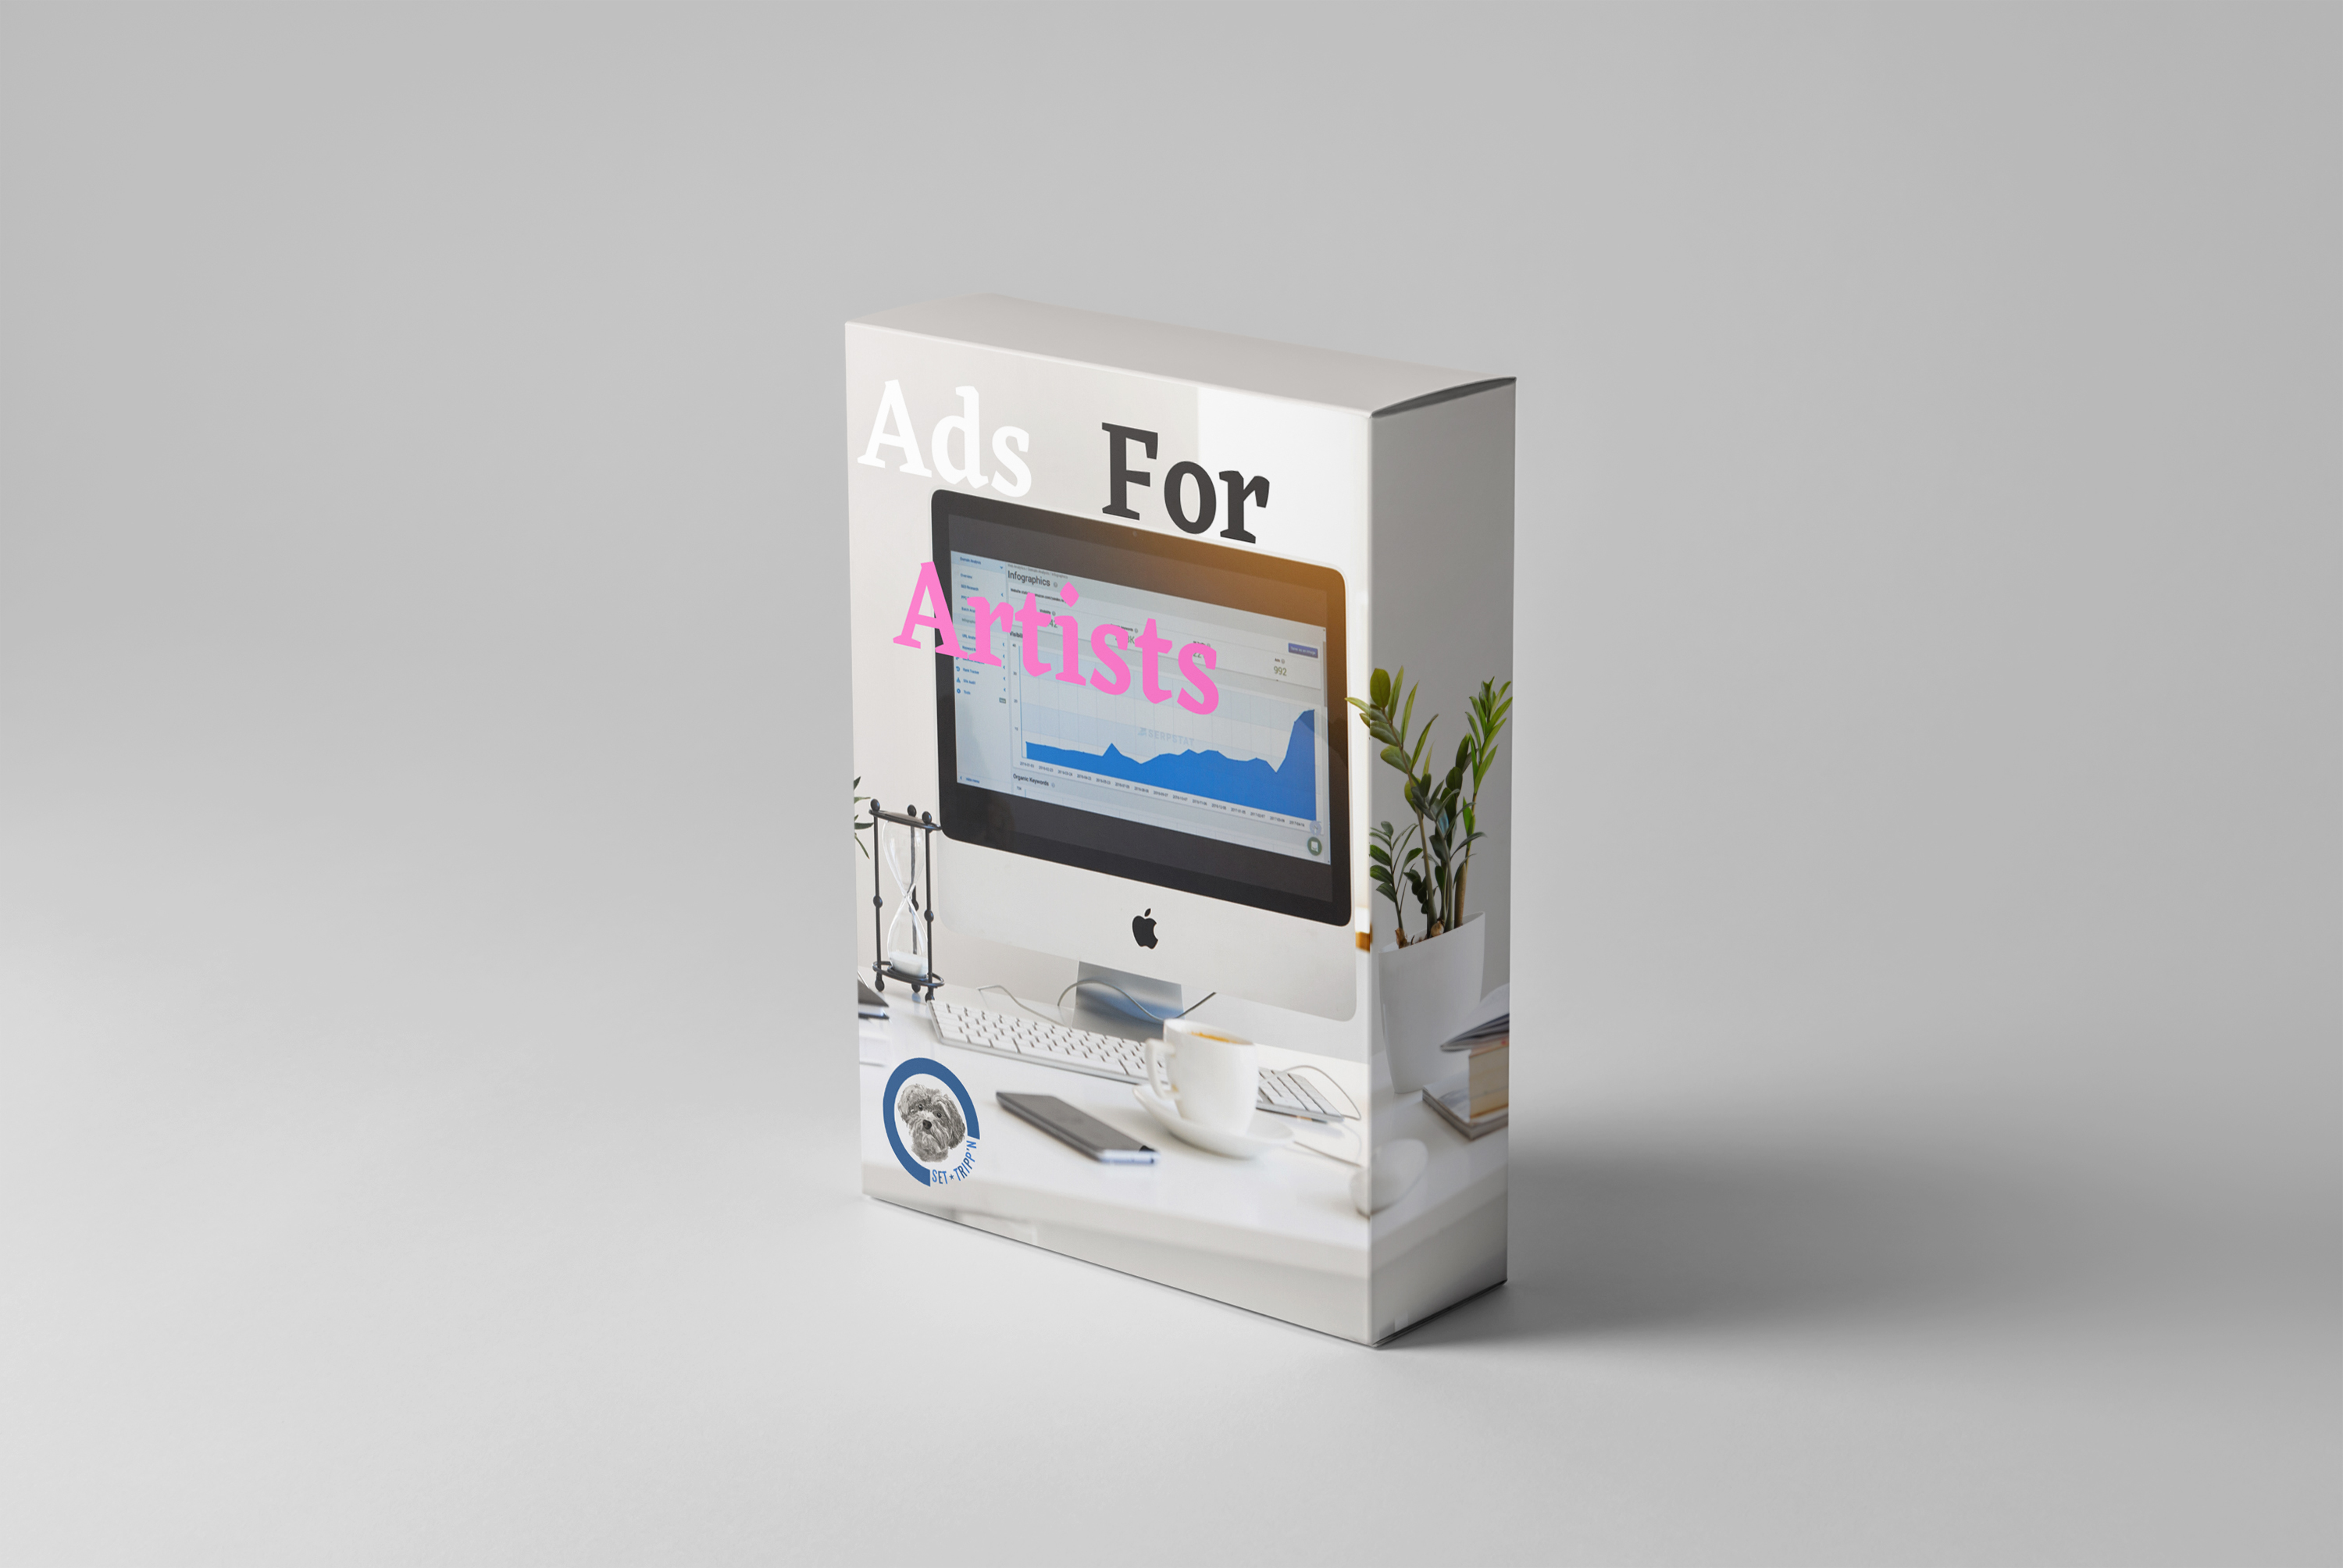 01_Sofware Box Mock-up_perspectiv view - ads